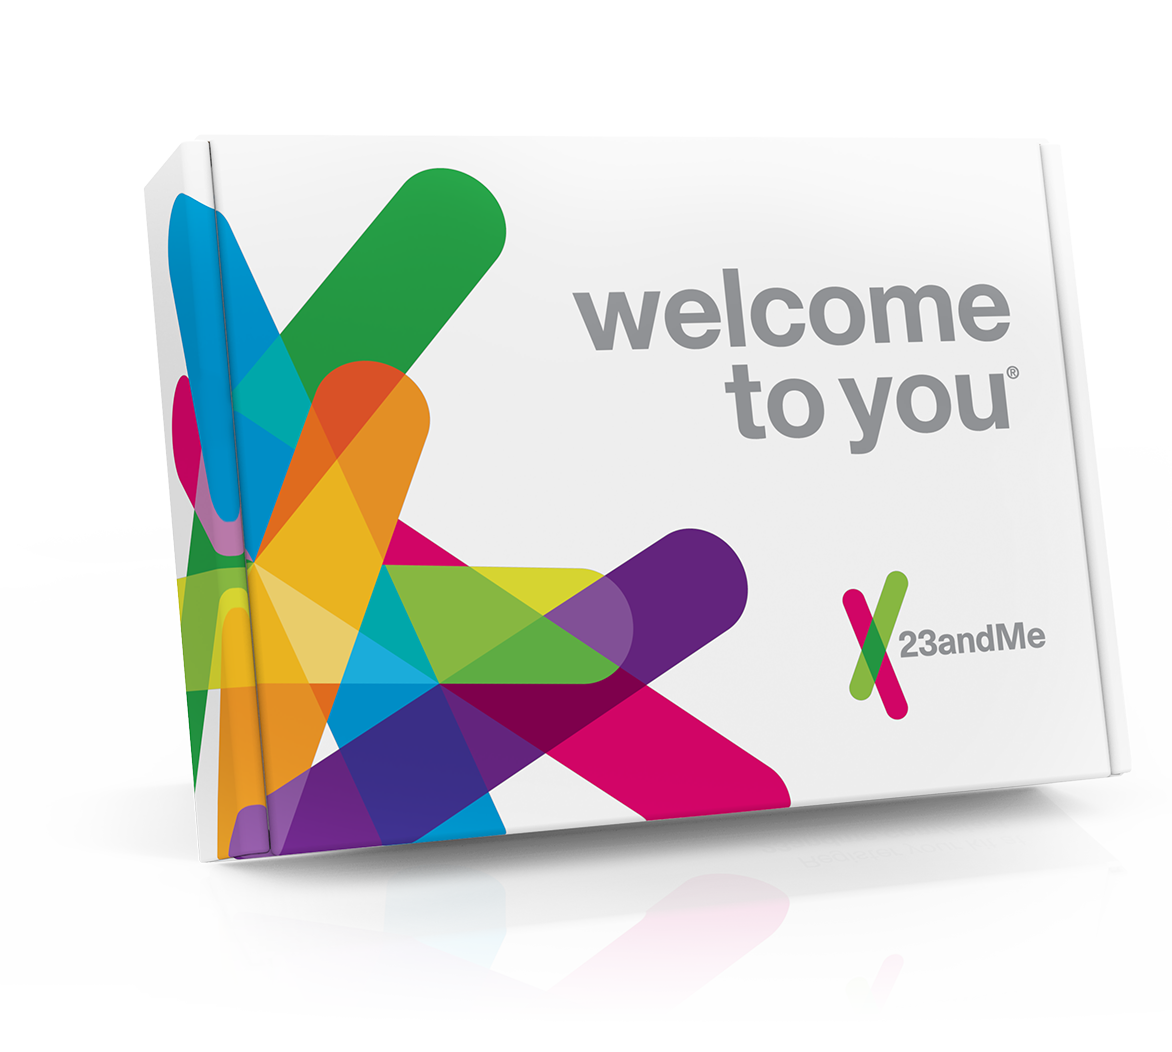 https www.23andme.com ancestry-composition-guide